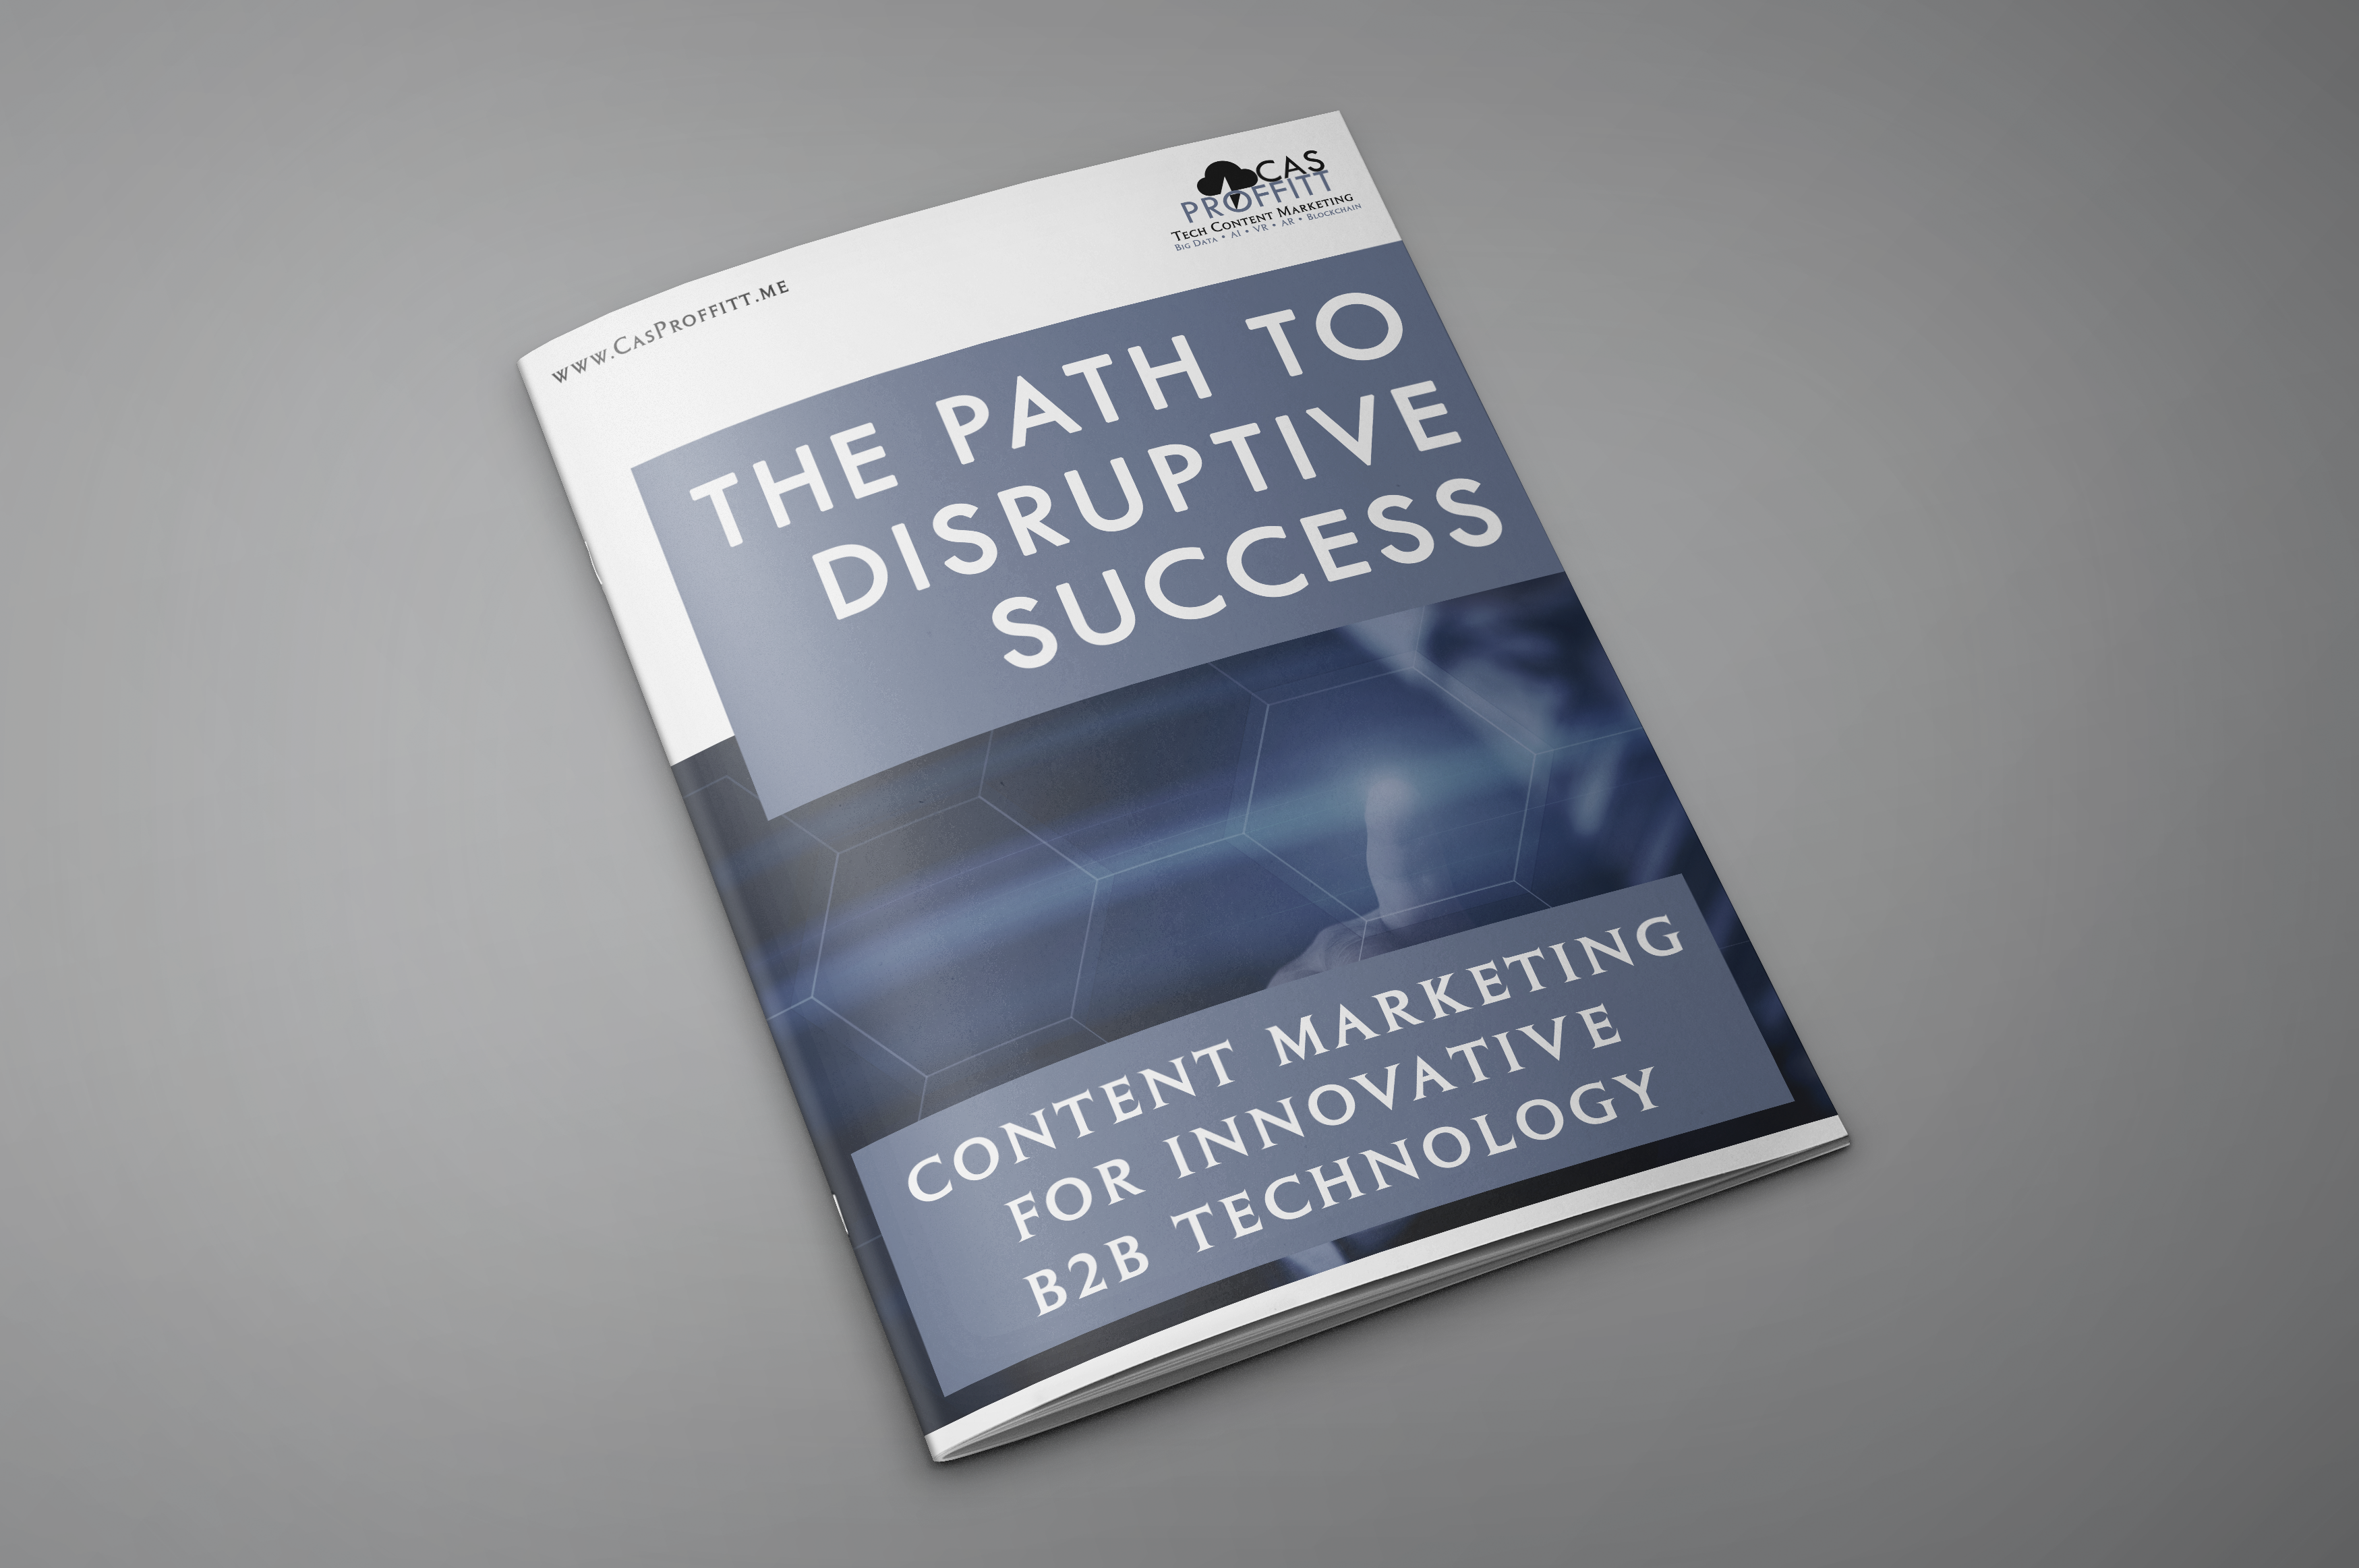 the-path-to-disruptive-success-content-marketing-for-innovative-b2b-technology-whitepaper-angled-cropped